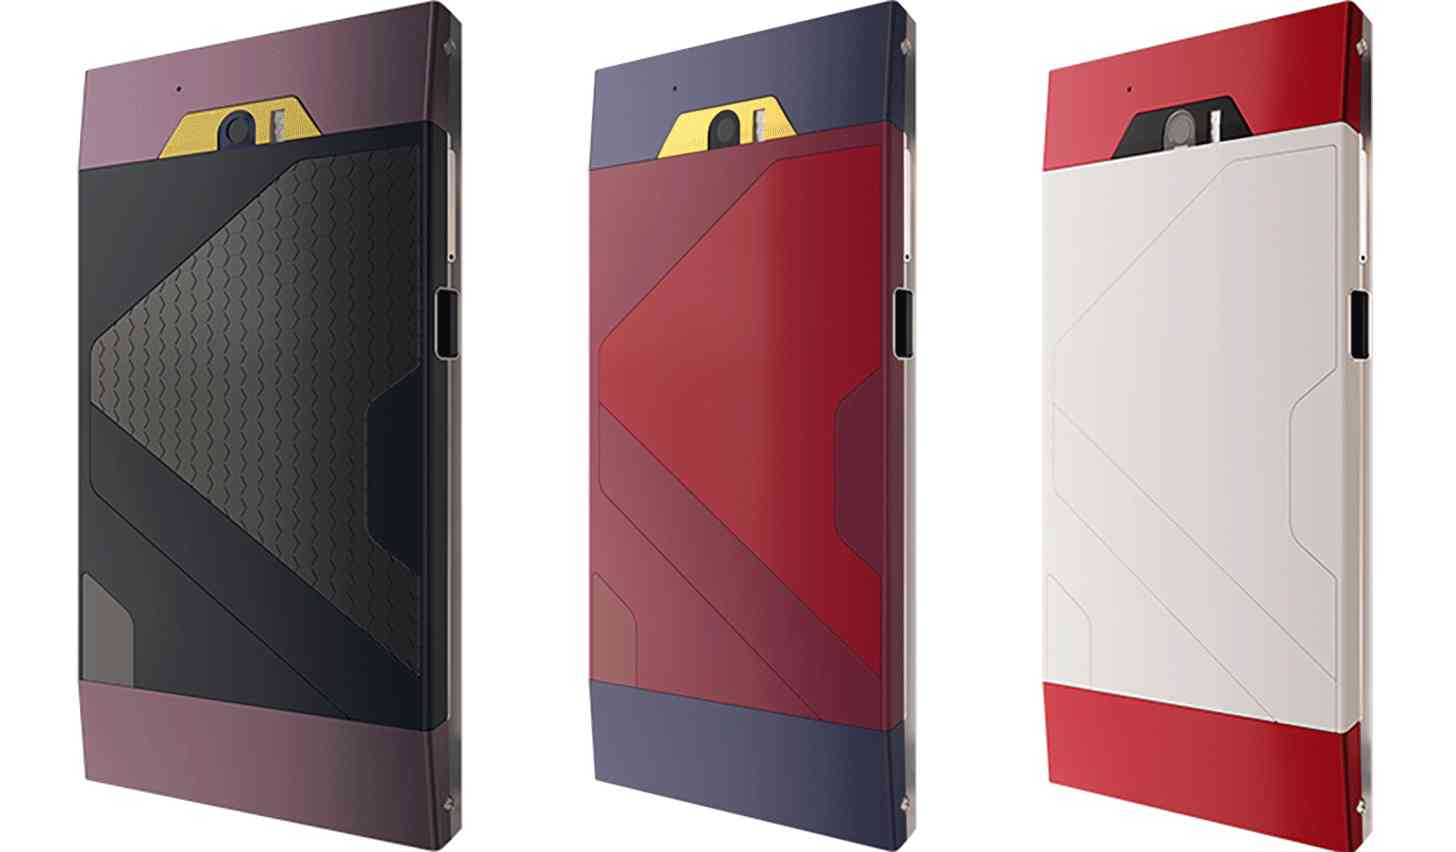 Turing Phone colors